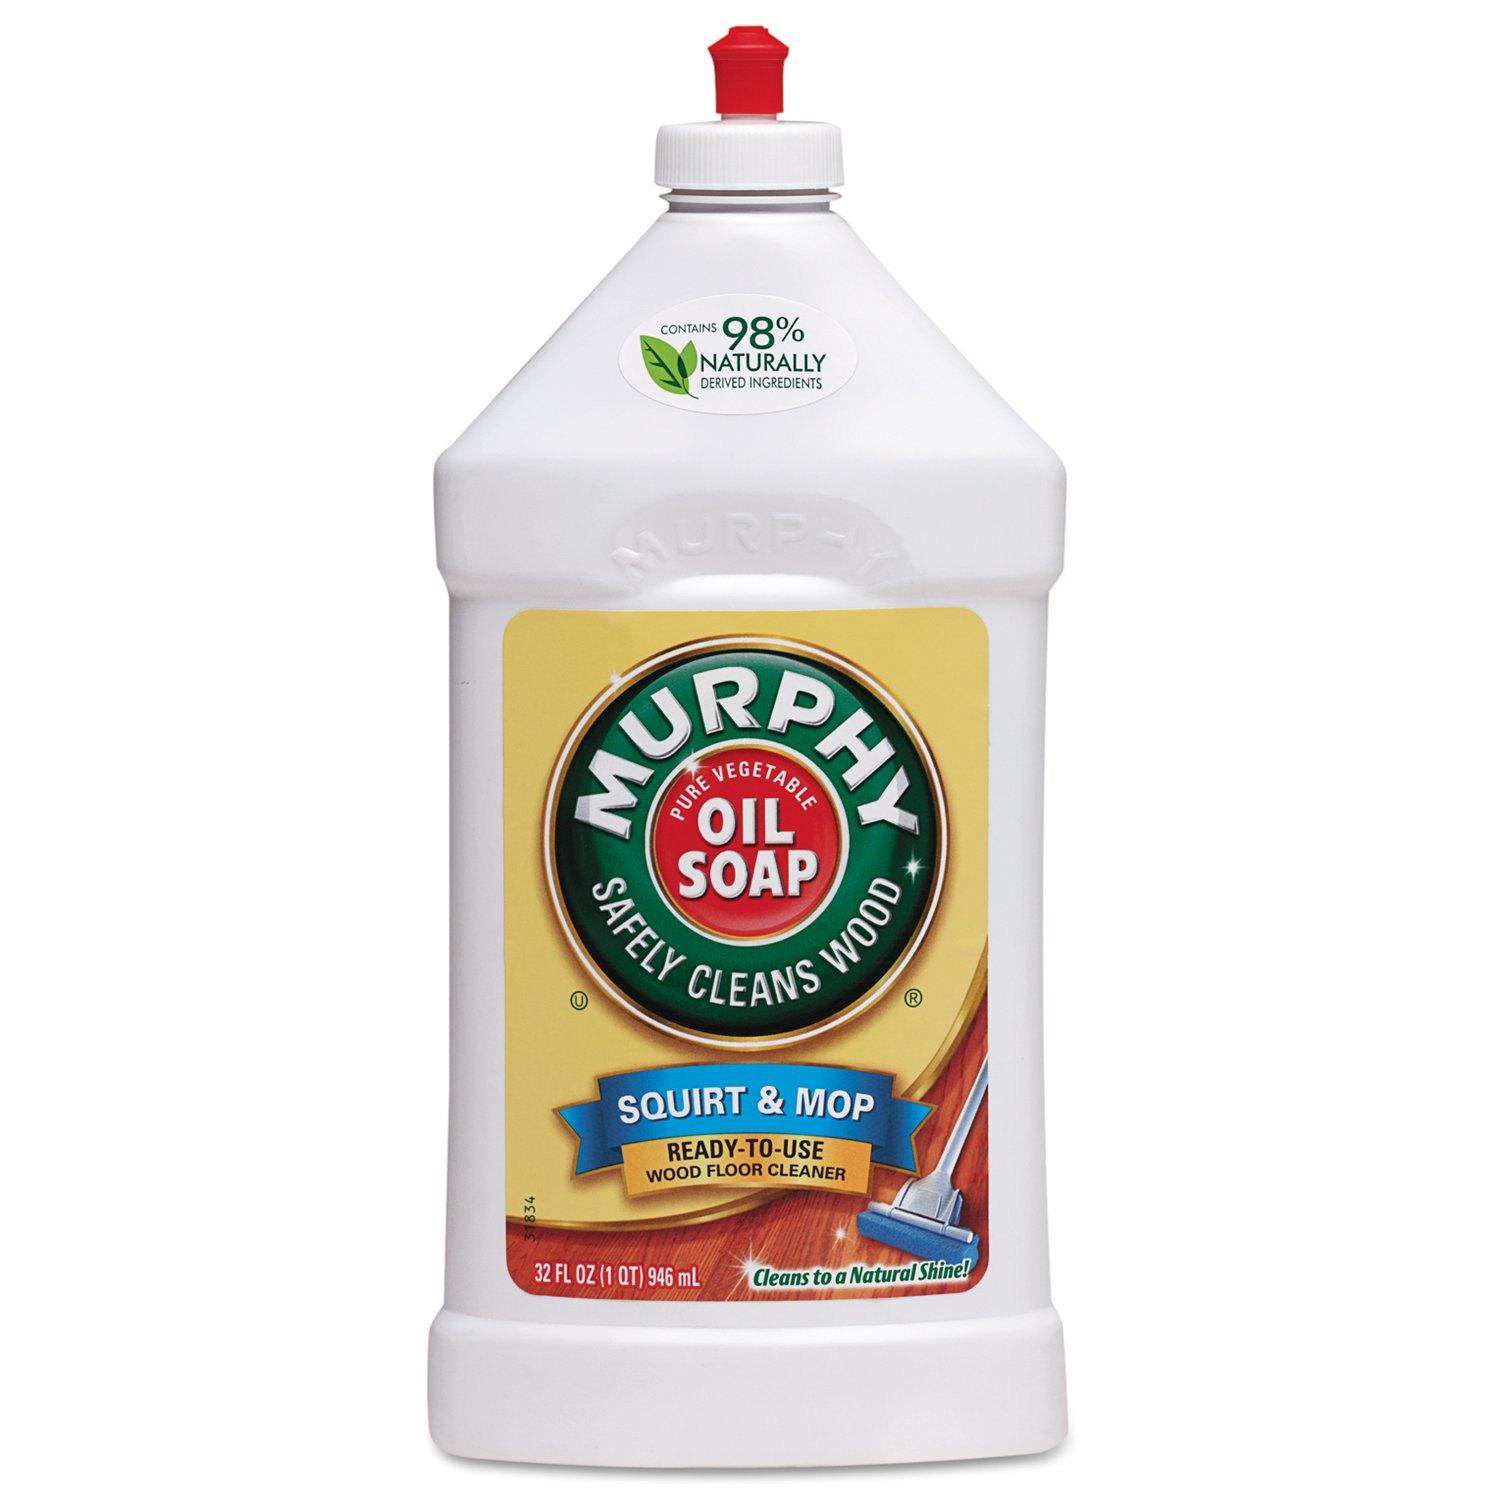 Murphy's Oil Soap Squirt and Mop Ready To Use Wood Floor Cleaner, 32 Oz by Murphy's B00122EZ5Q